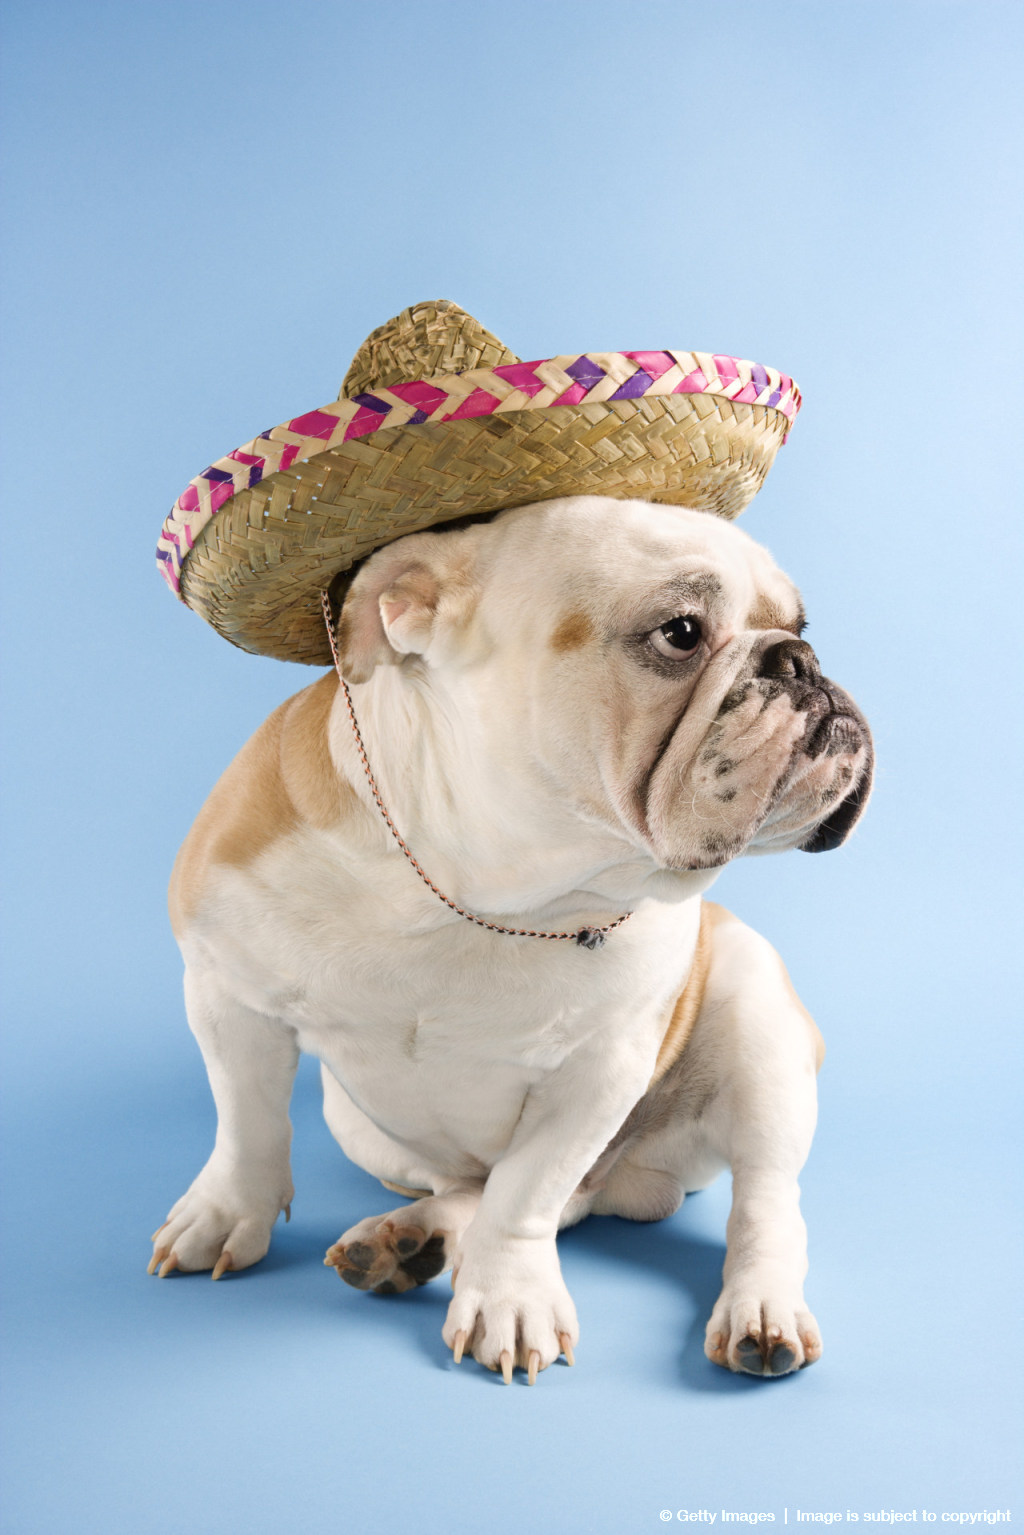 English Bulldog wearing sombrero on blue background looking off to the side.